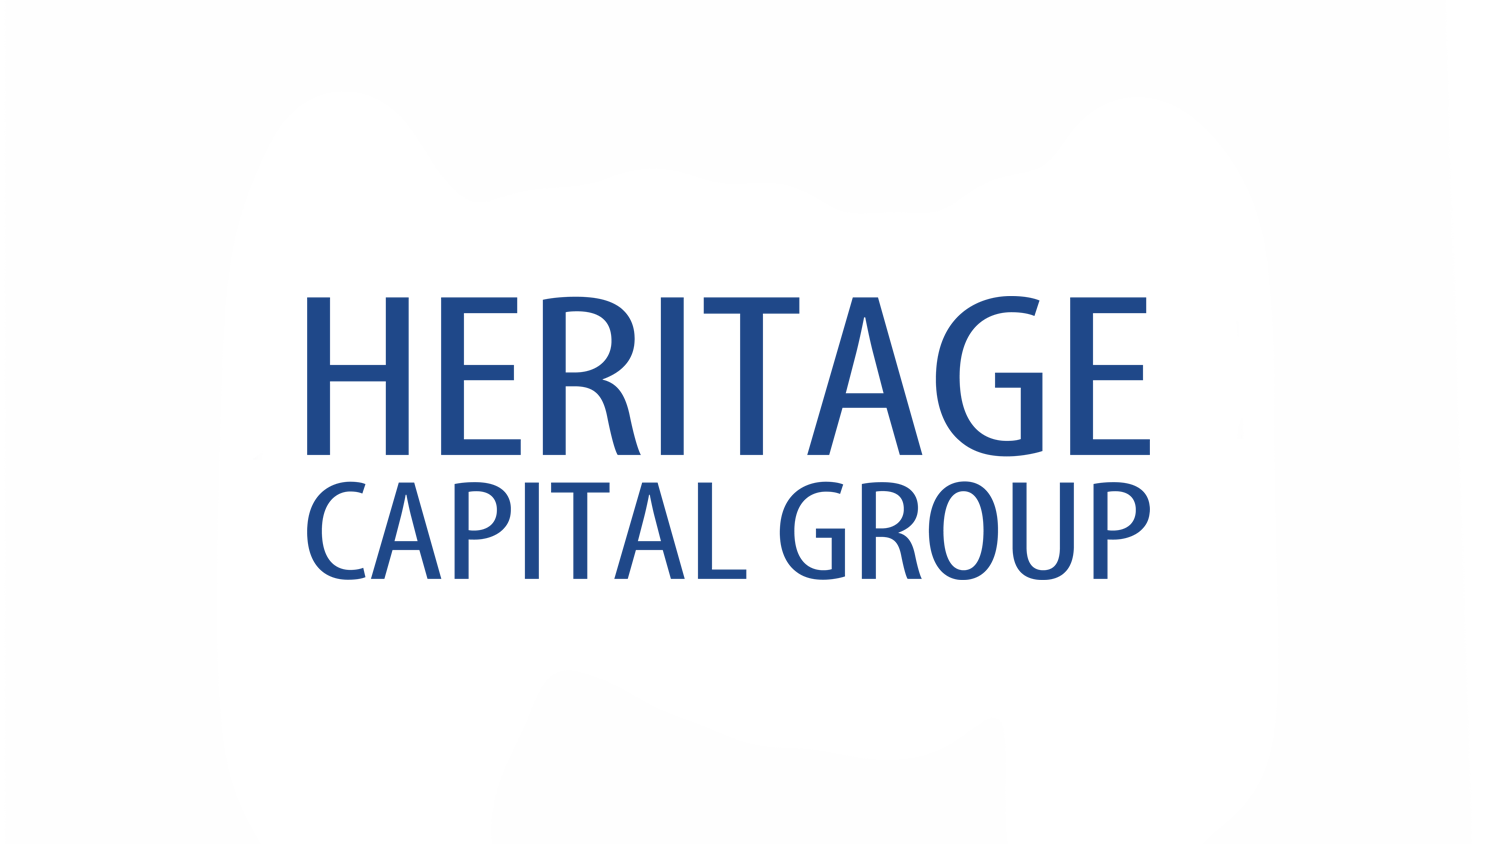 Investment Banker and Advisory Firm | Heritage Capital Group